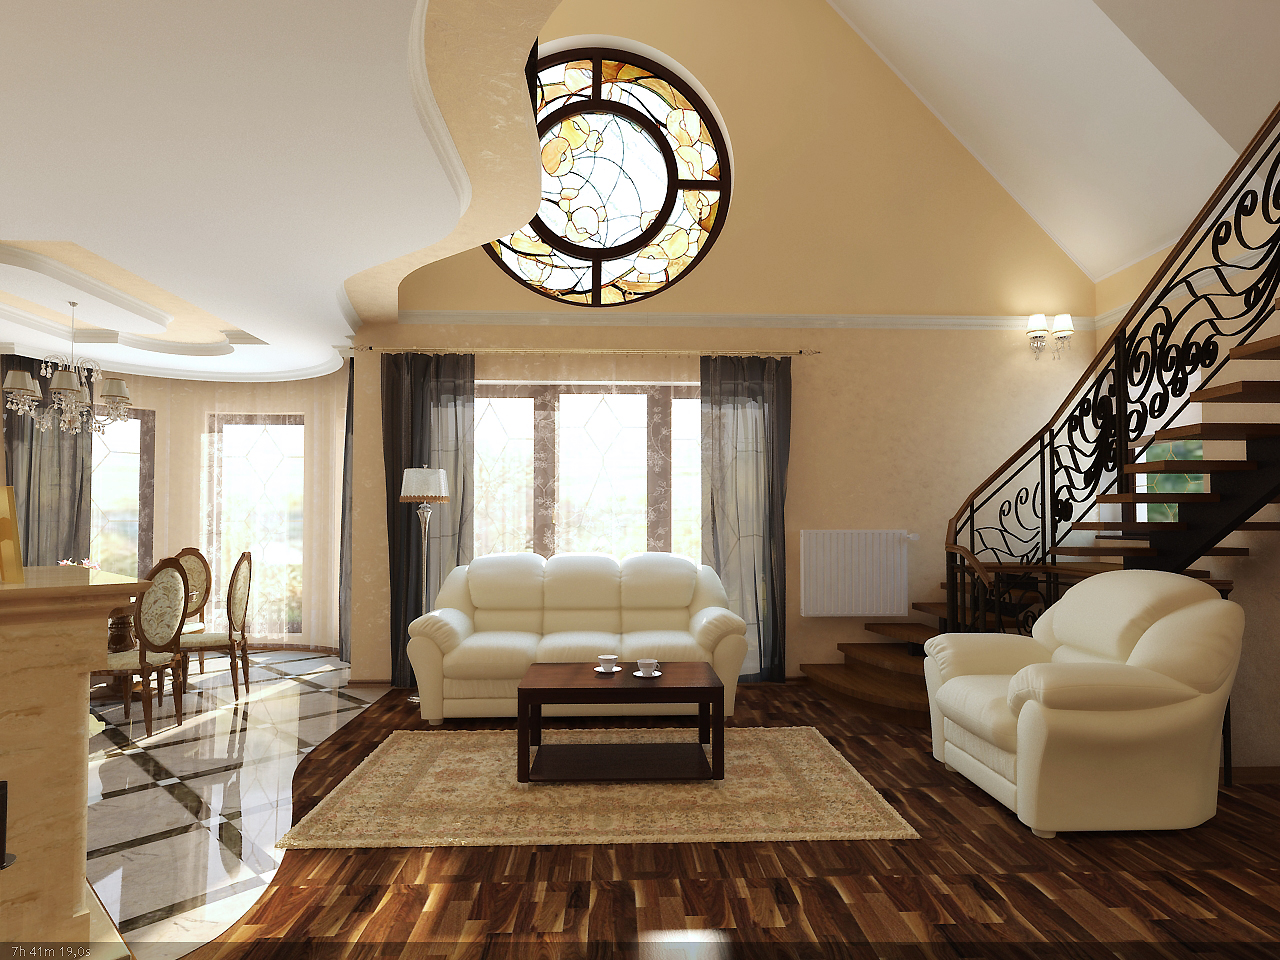 New home designs latest Modern homes interior decoration designs ideas